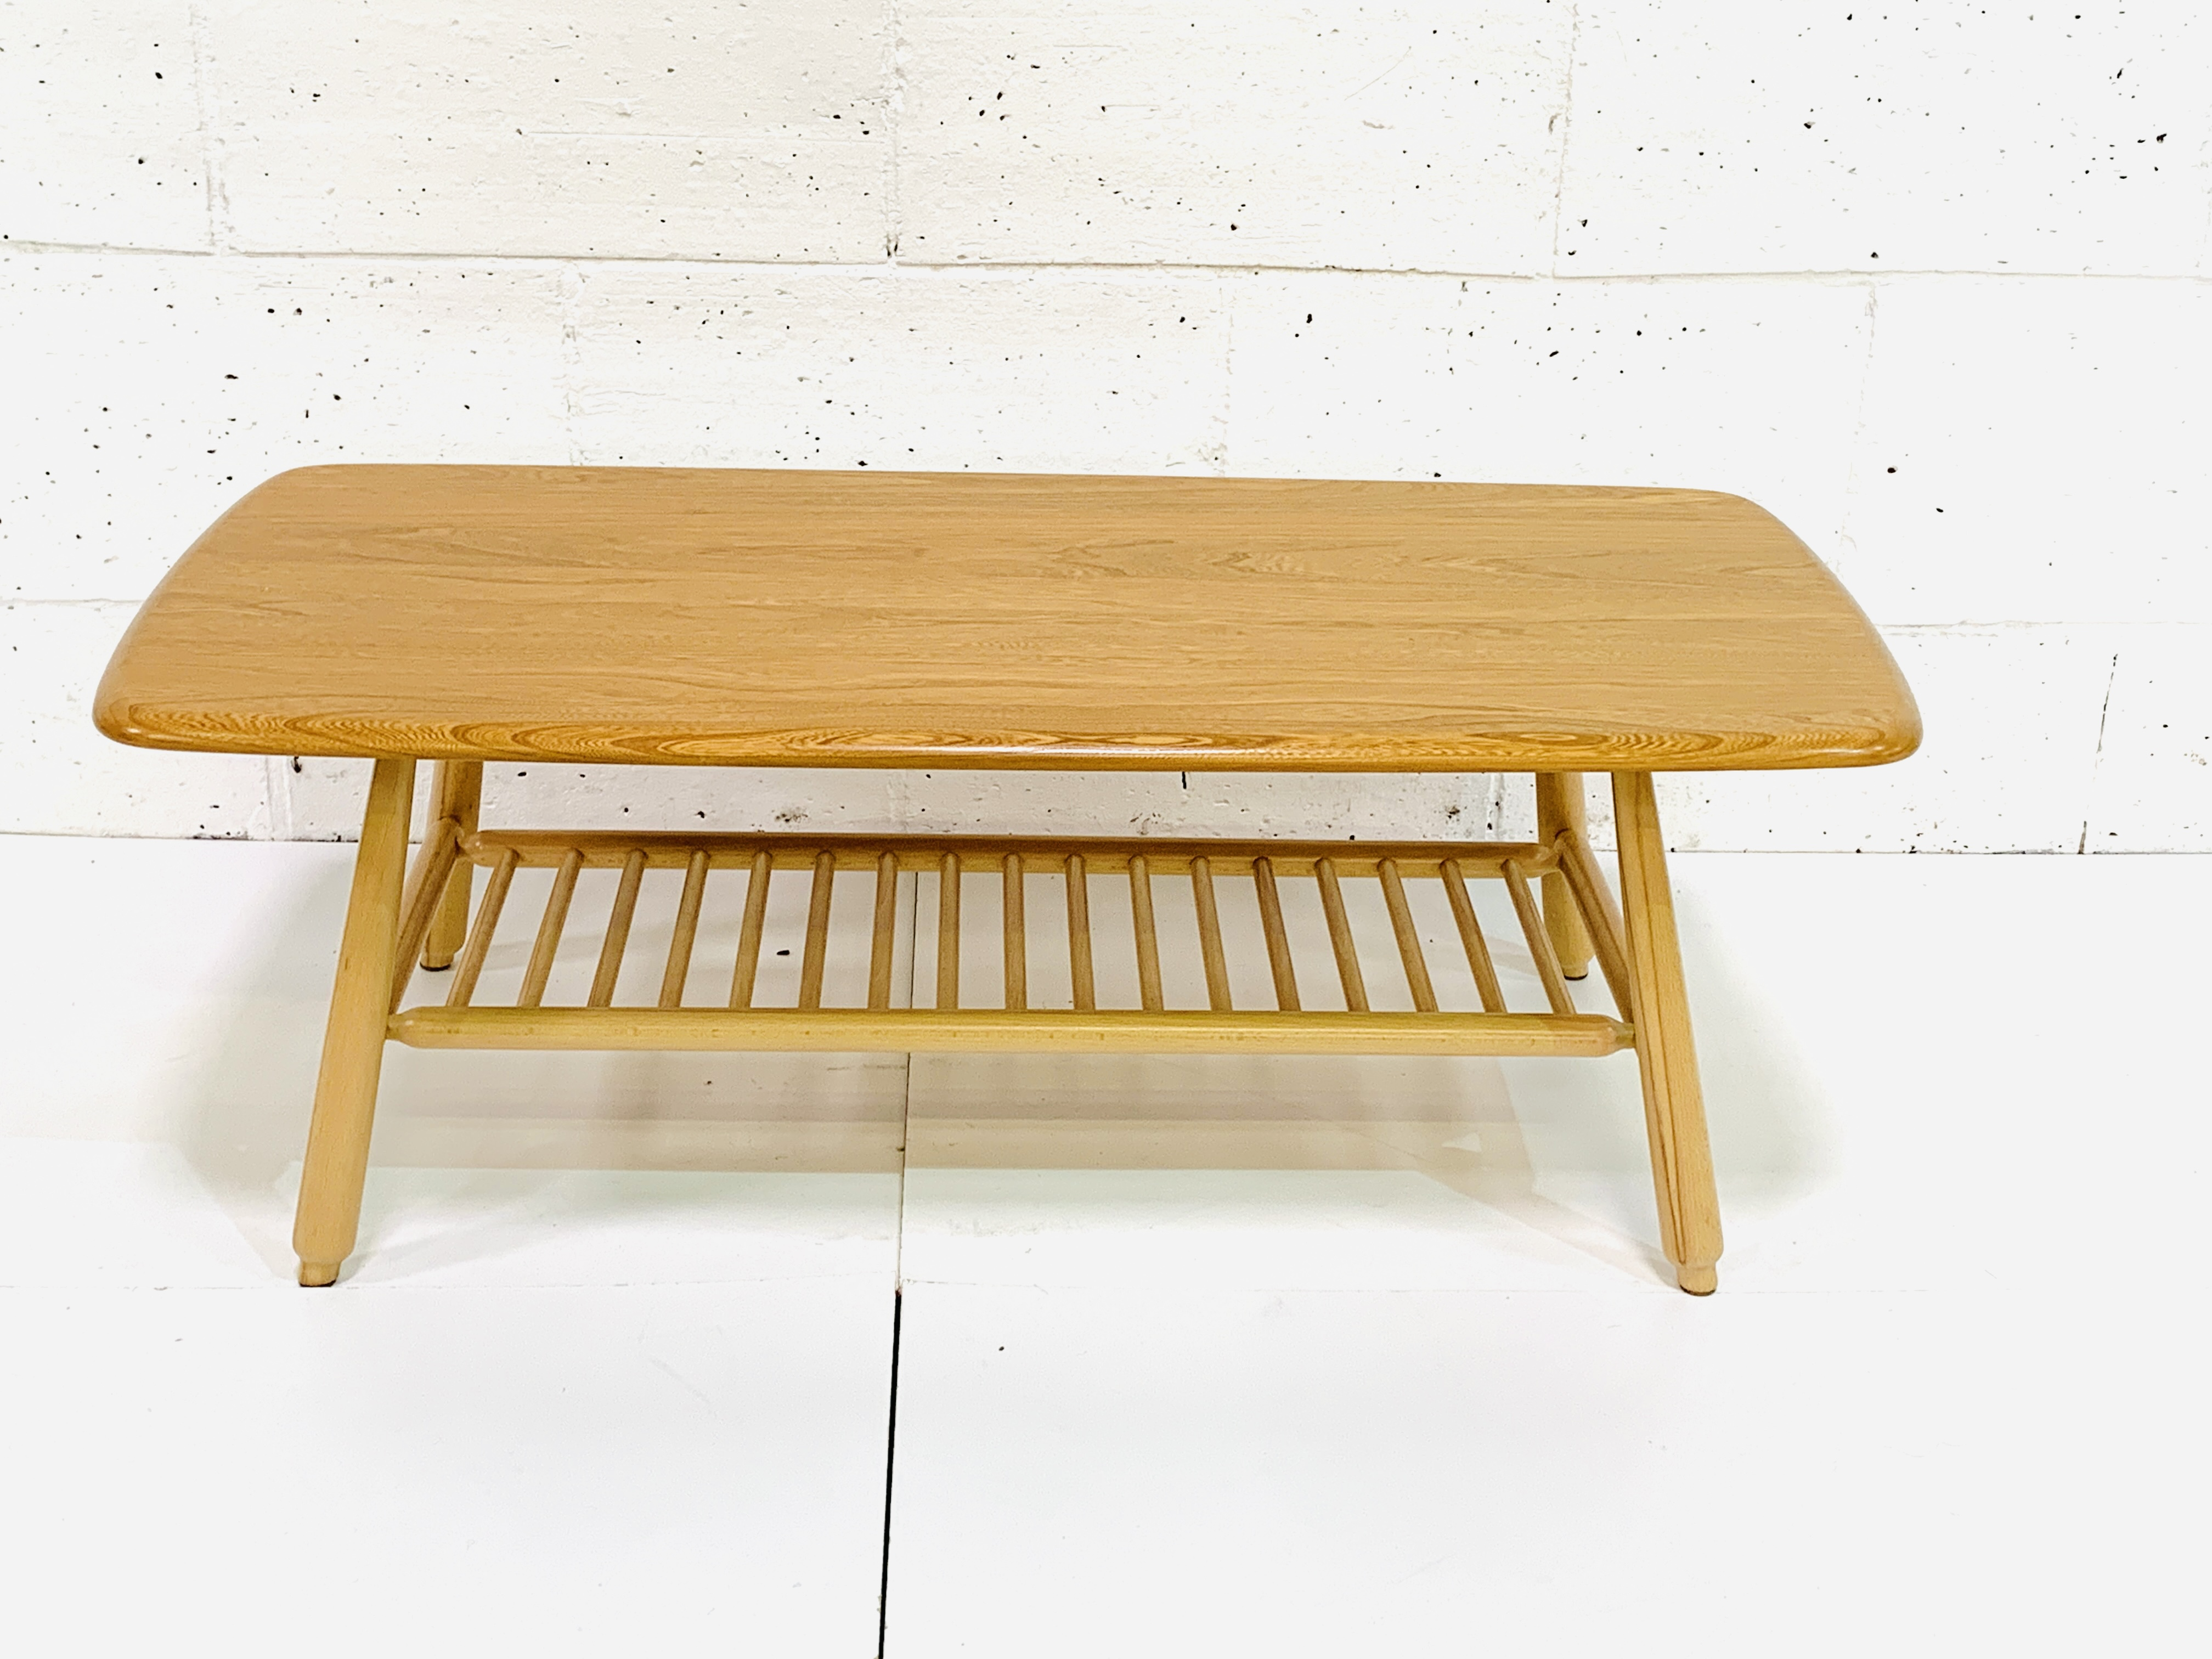 Ercol coffee table - Image 3 of 4